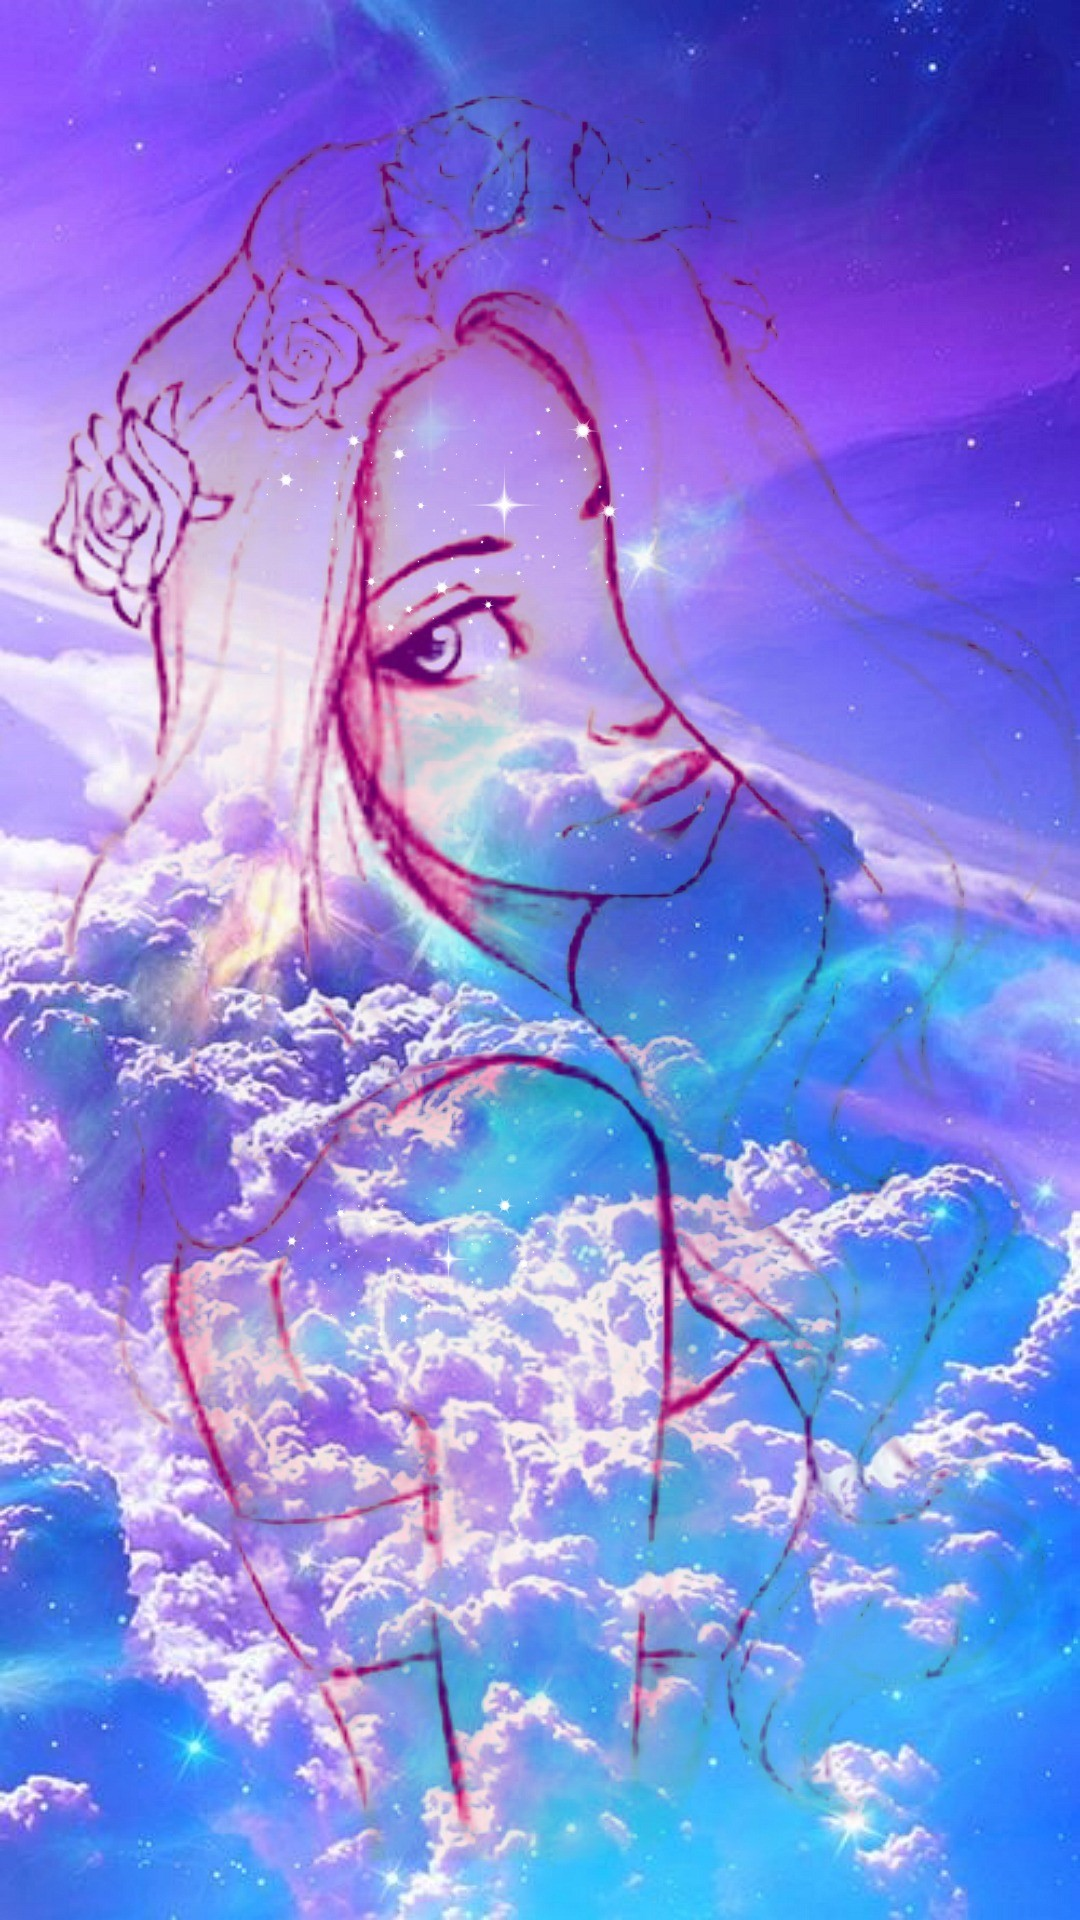 Cool Galaxy Wallpapers for Girls 79+ images